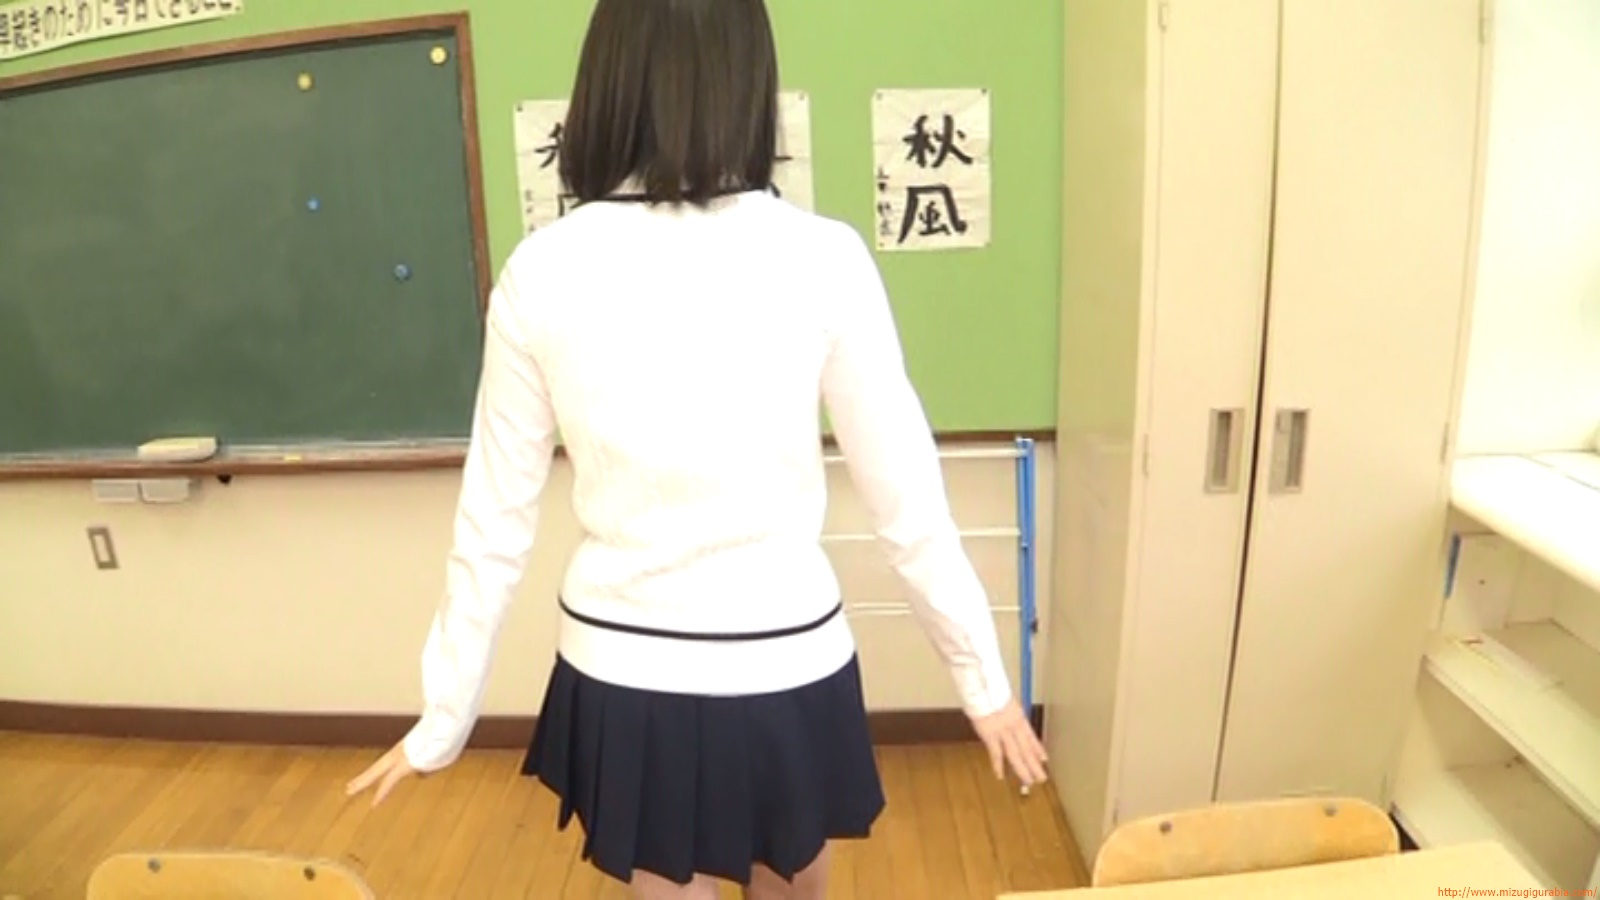 Two-person classroom056